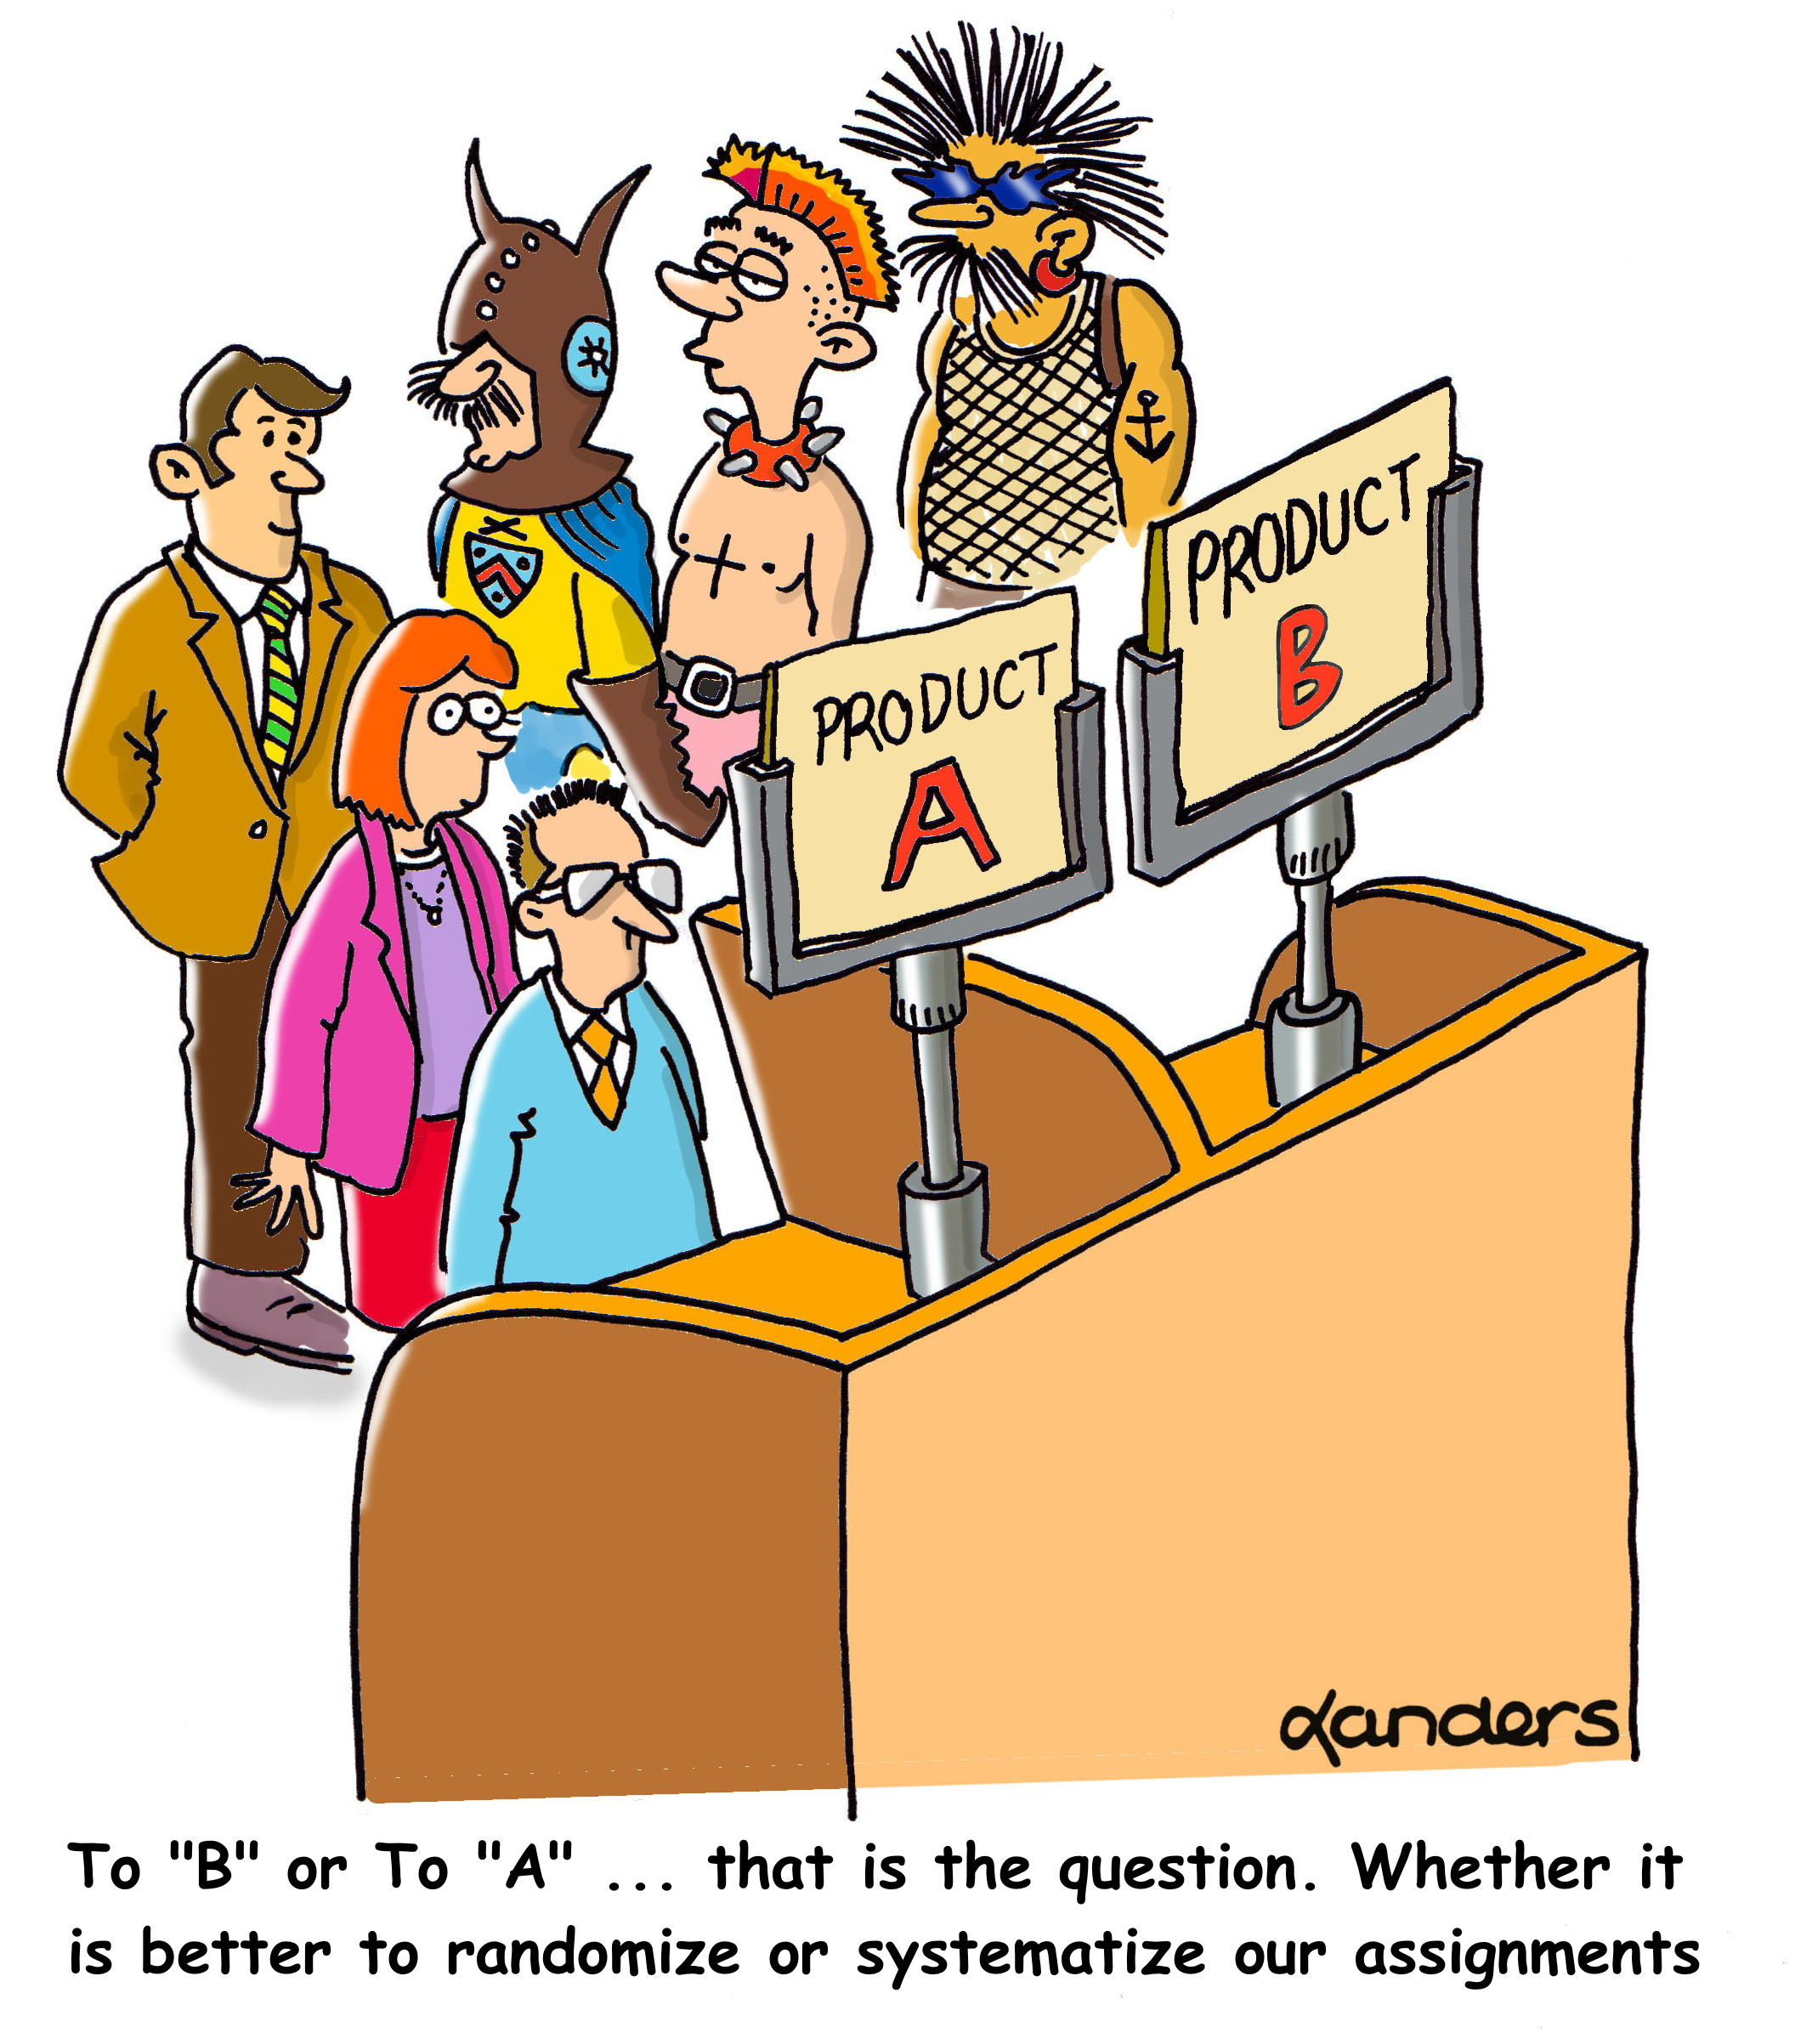 cartoon showing product testing booth with 3 conservatively dressed and 3 wildly dressed subjects